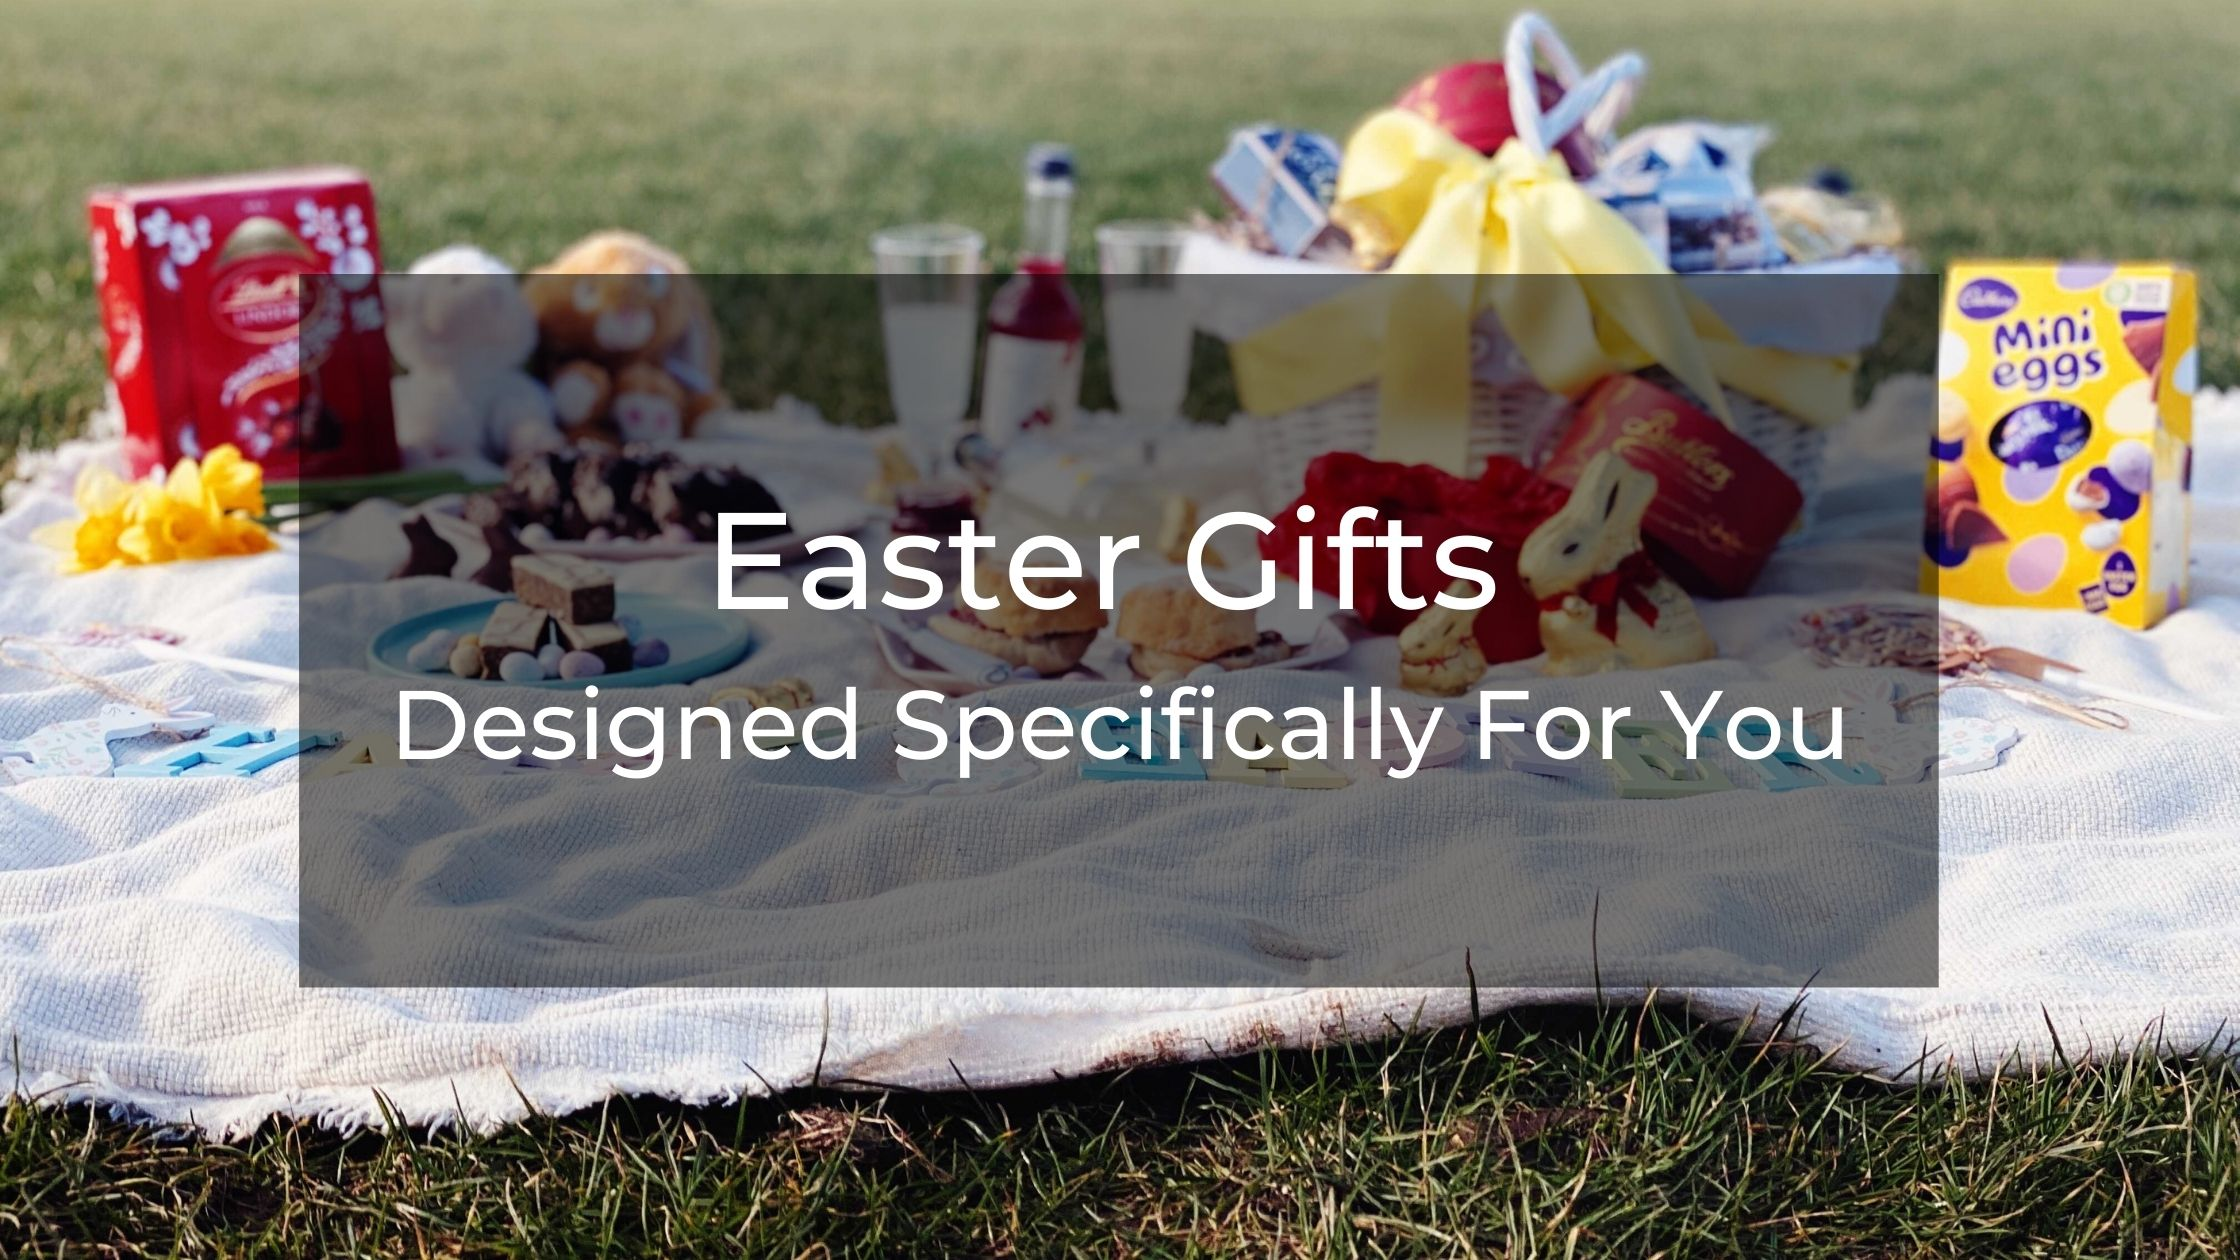 Easter Gifts UK Designed Specifically for You